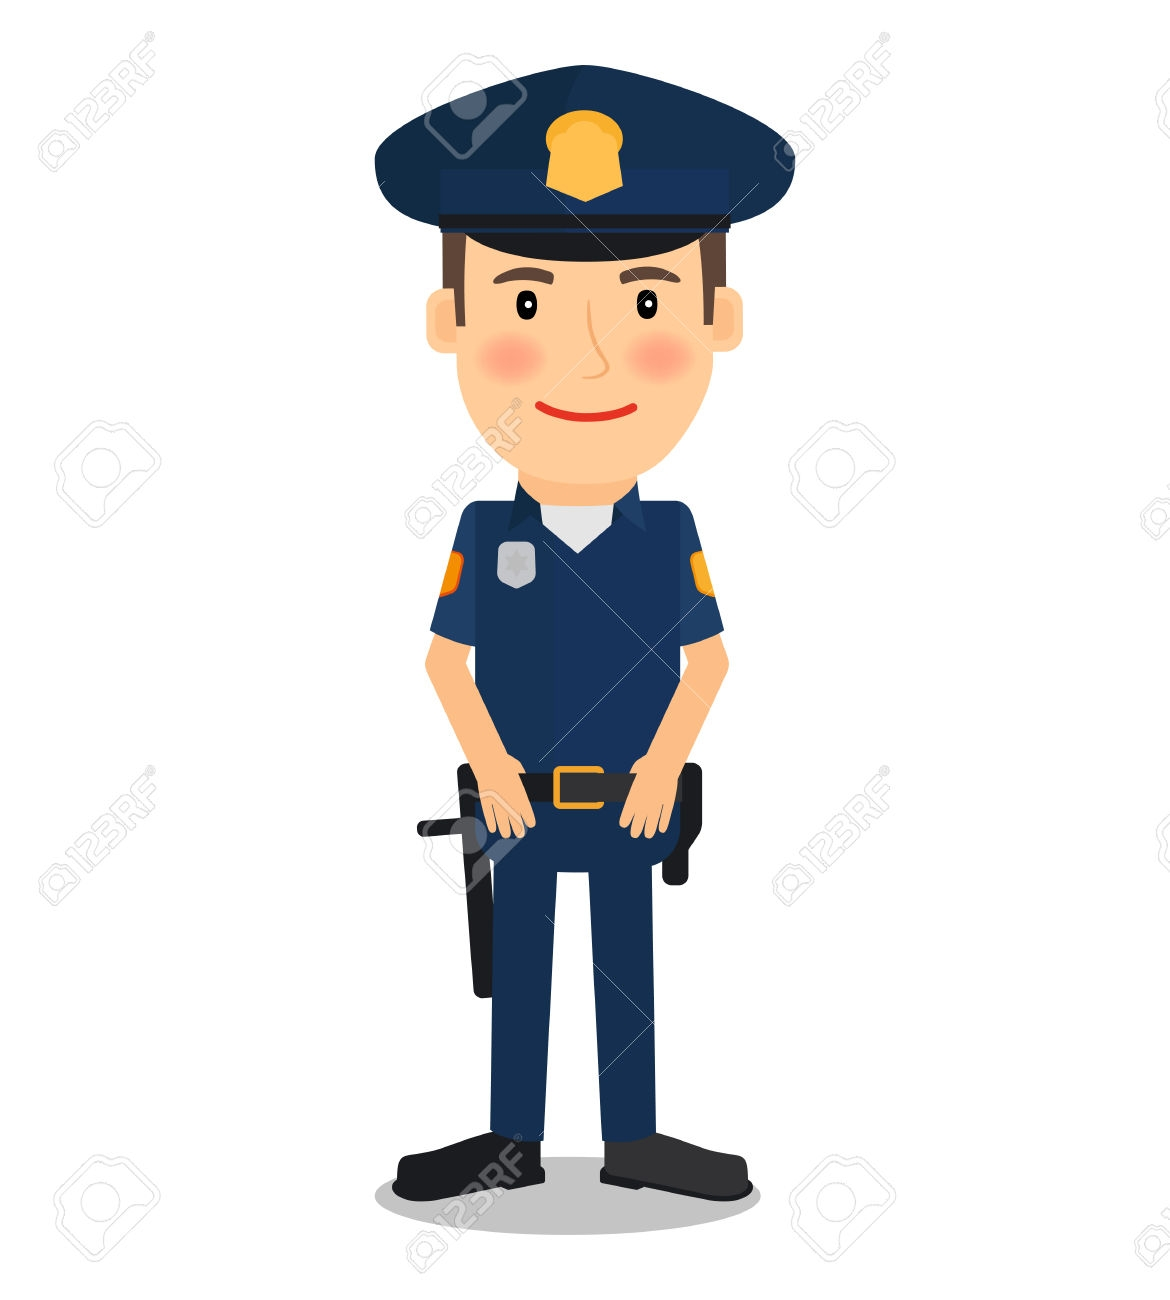 Clipart of police officer picture royalty free Policeman clipart Best of Cop clipart police officer Pencil and in ... picture royalty free